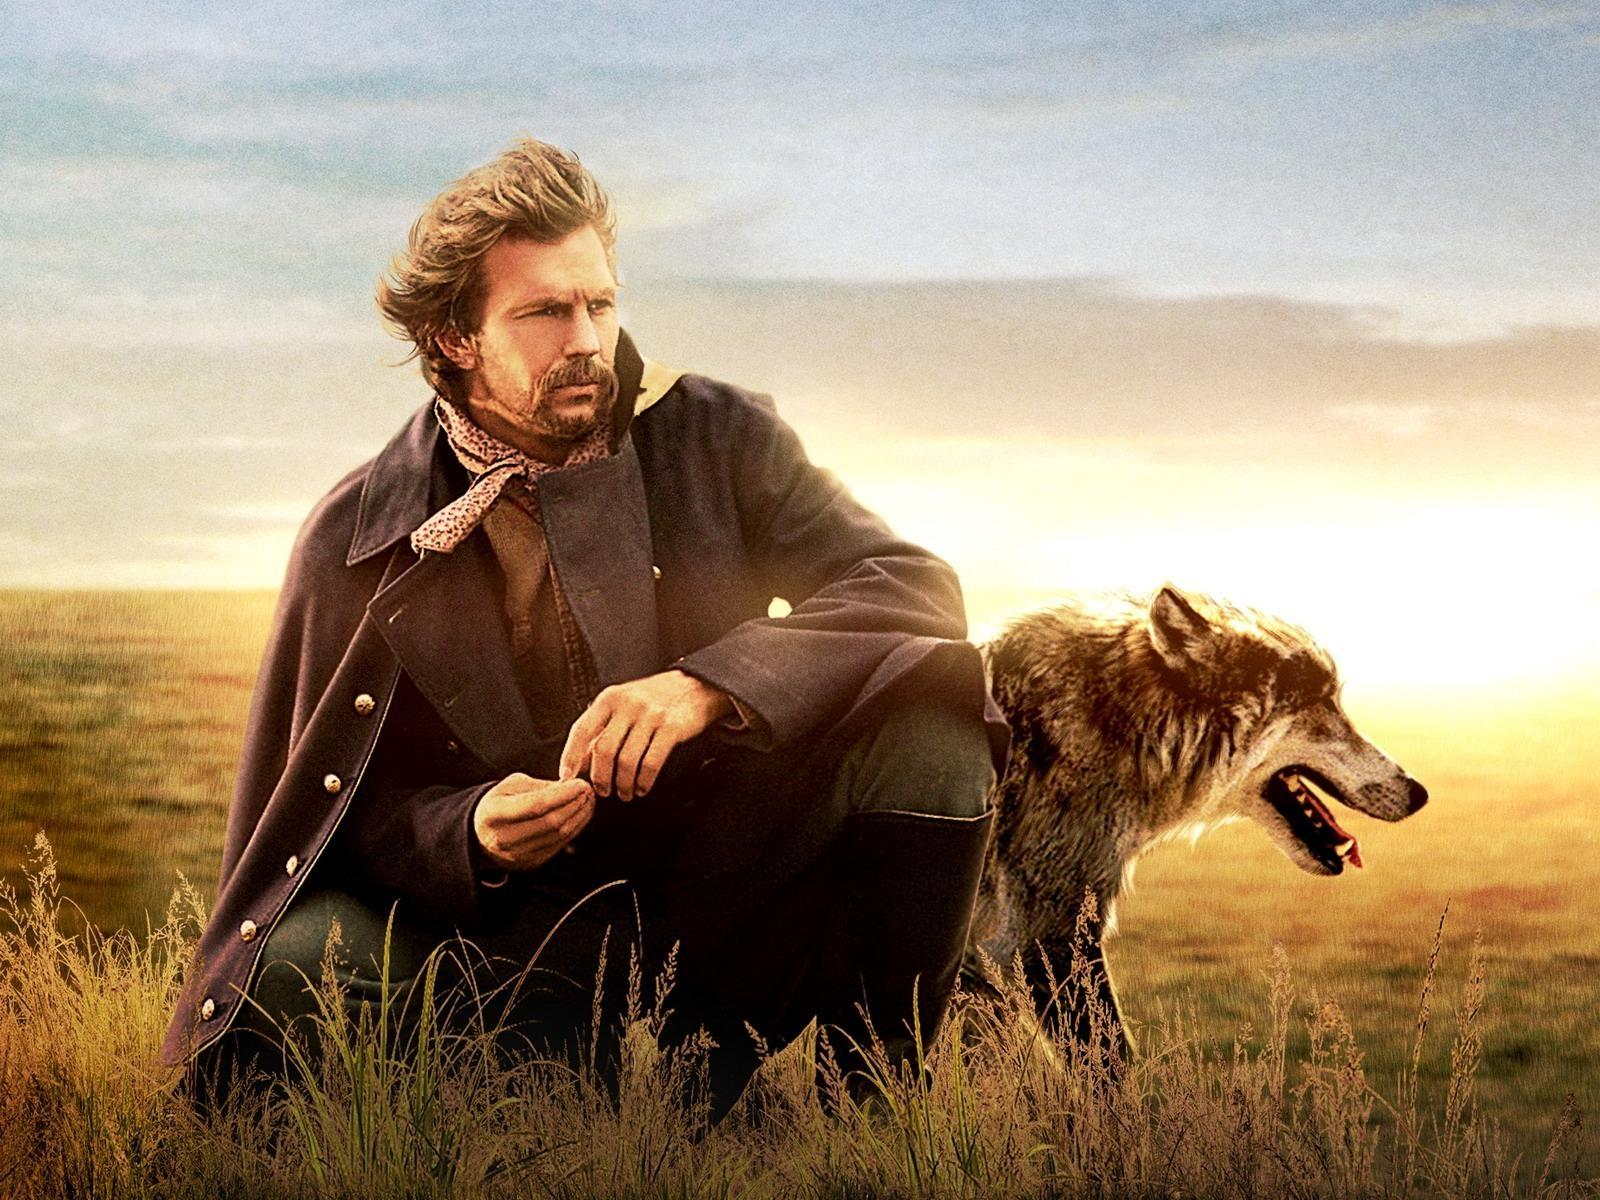 Dances with Wolves Wallpaper and Background Image | 1600x1200 | ID:342580 -  Wallpaper Abyss